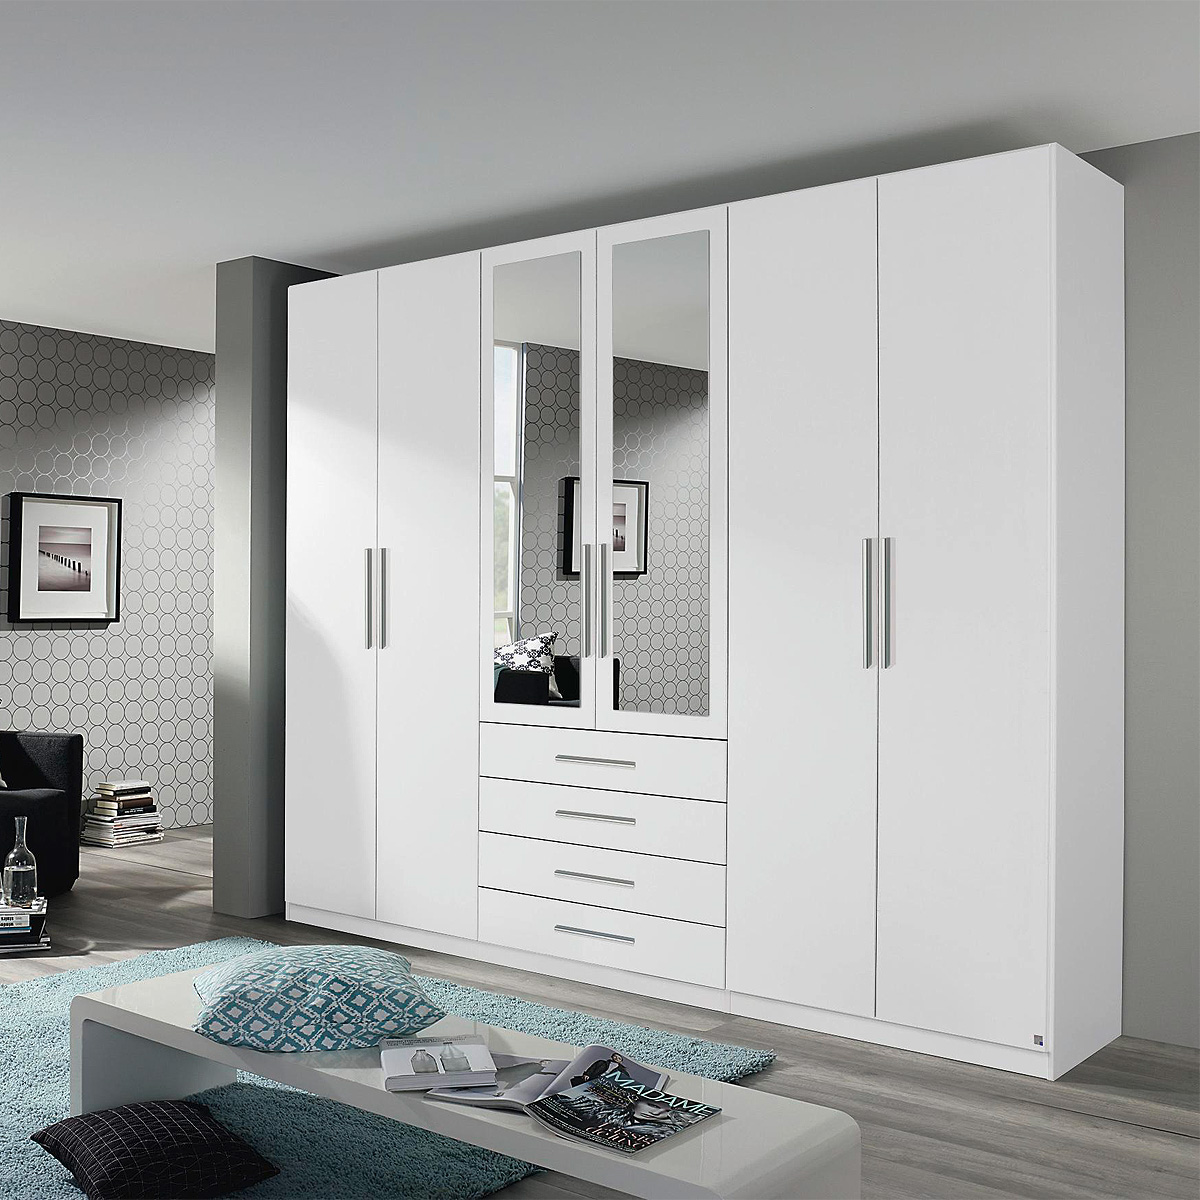 kleiderschrank kempten schrank schlafzimmer in wei und sonoma eiche spiegel 271 ebay. Black Bedroom Furniture Sets. Home Design Ideas